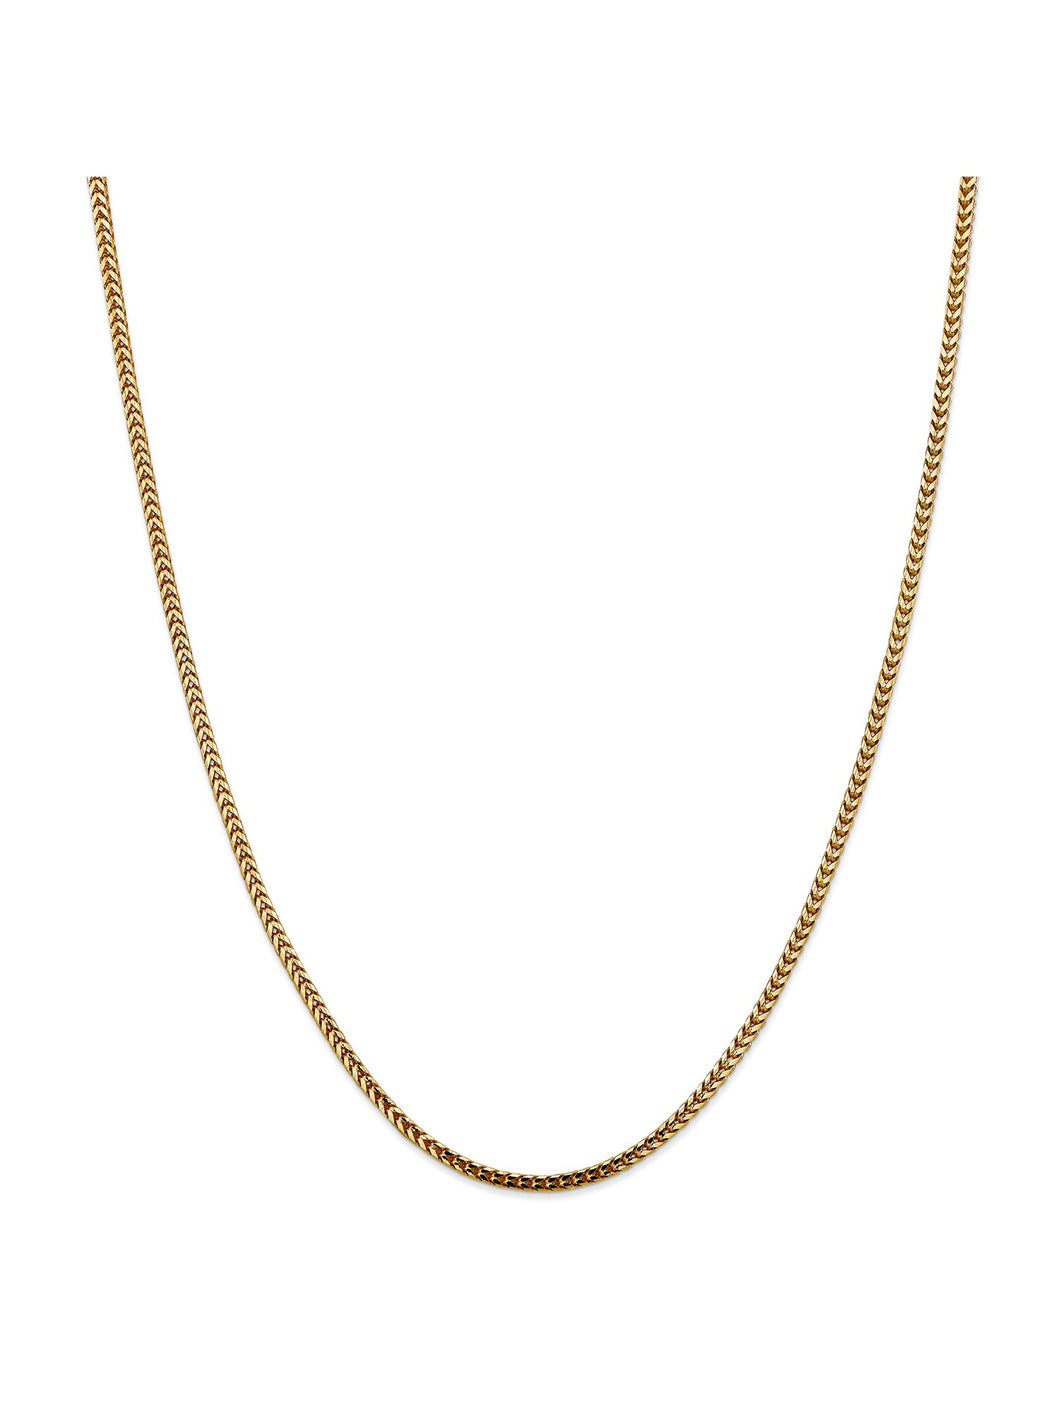 14k Yellow Gold 2.5mm Franco Chain Necklace